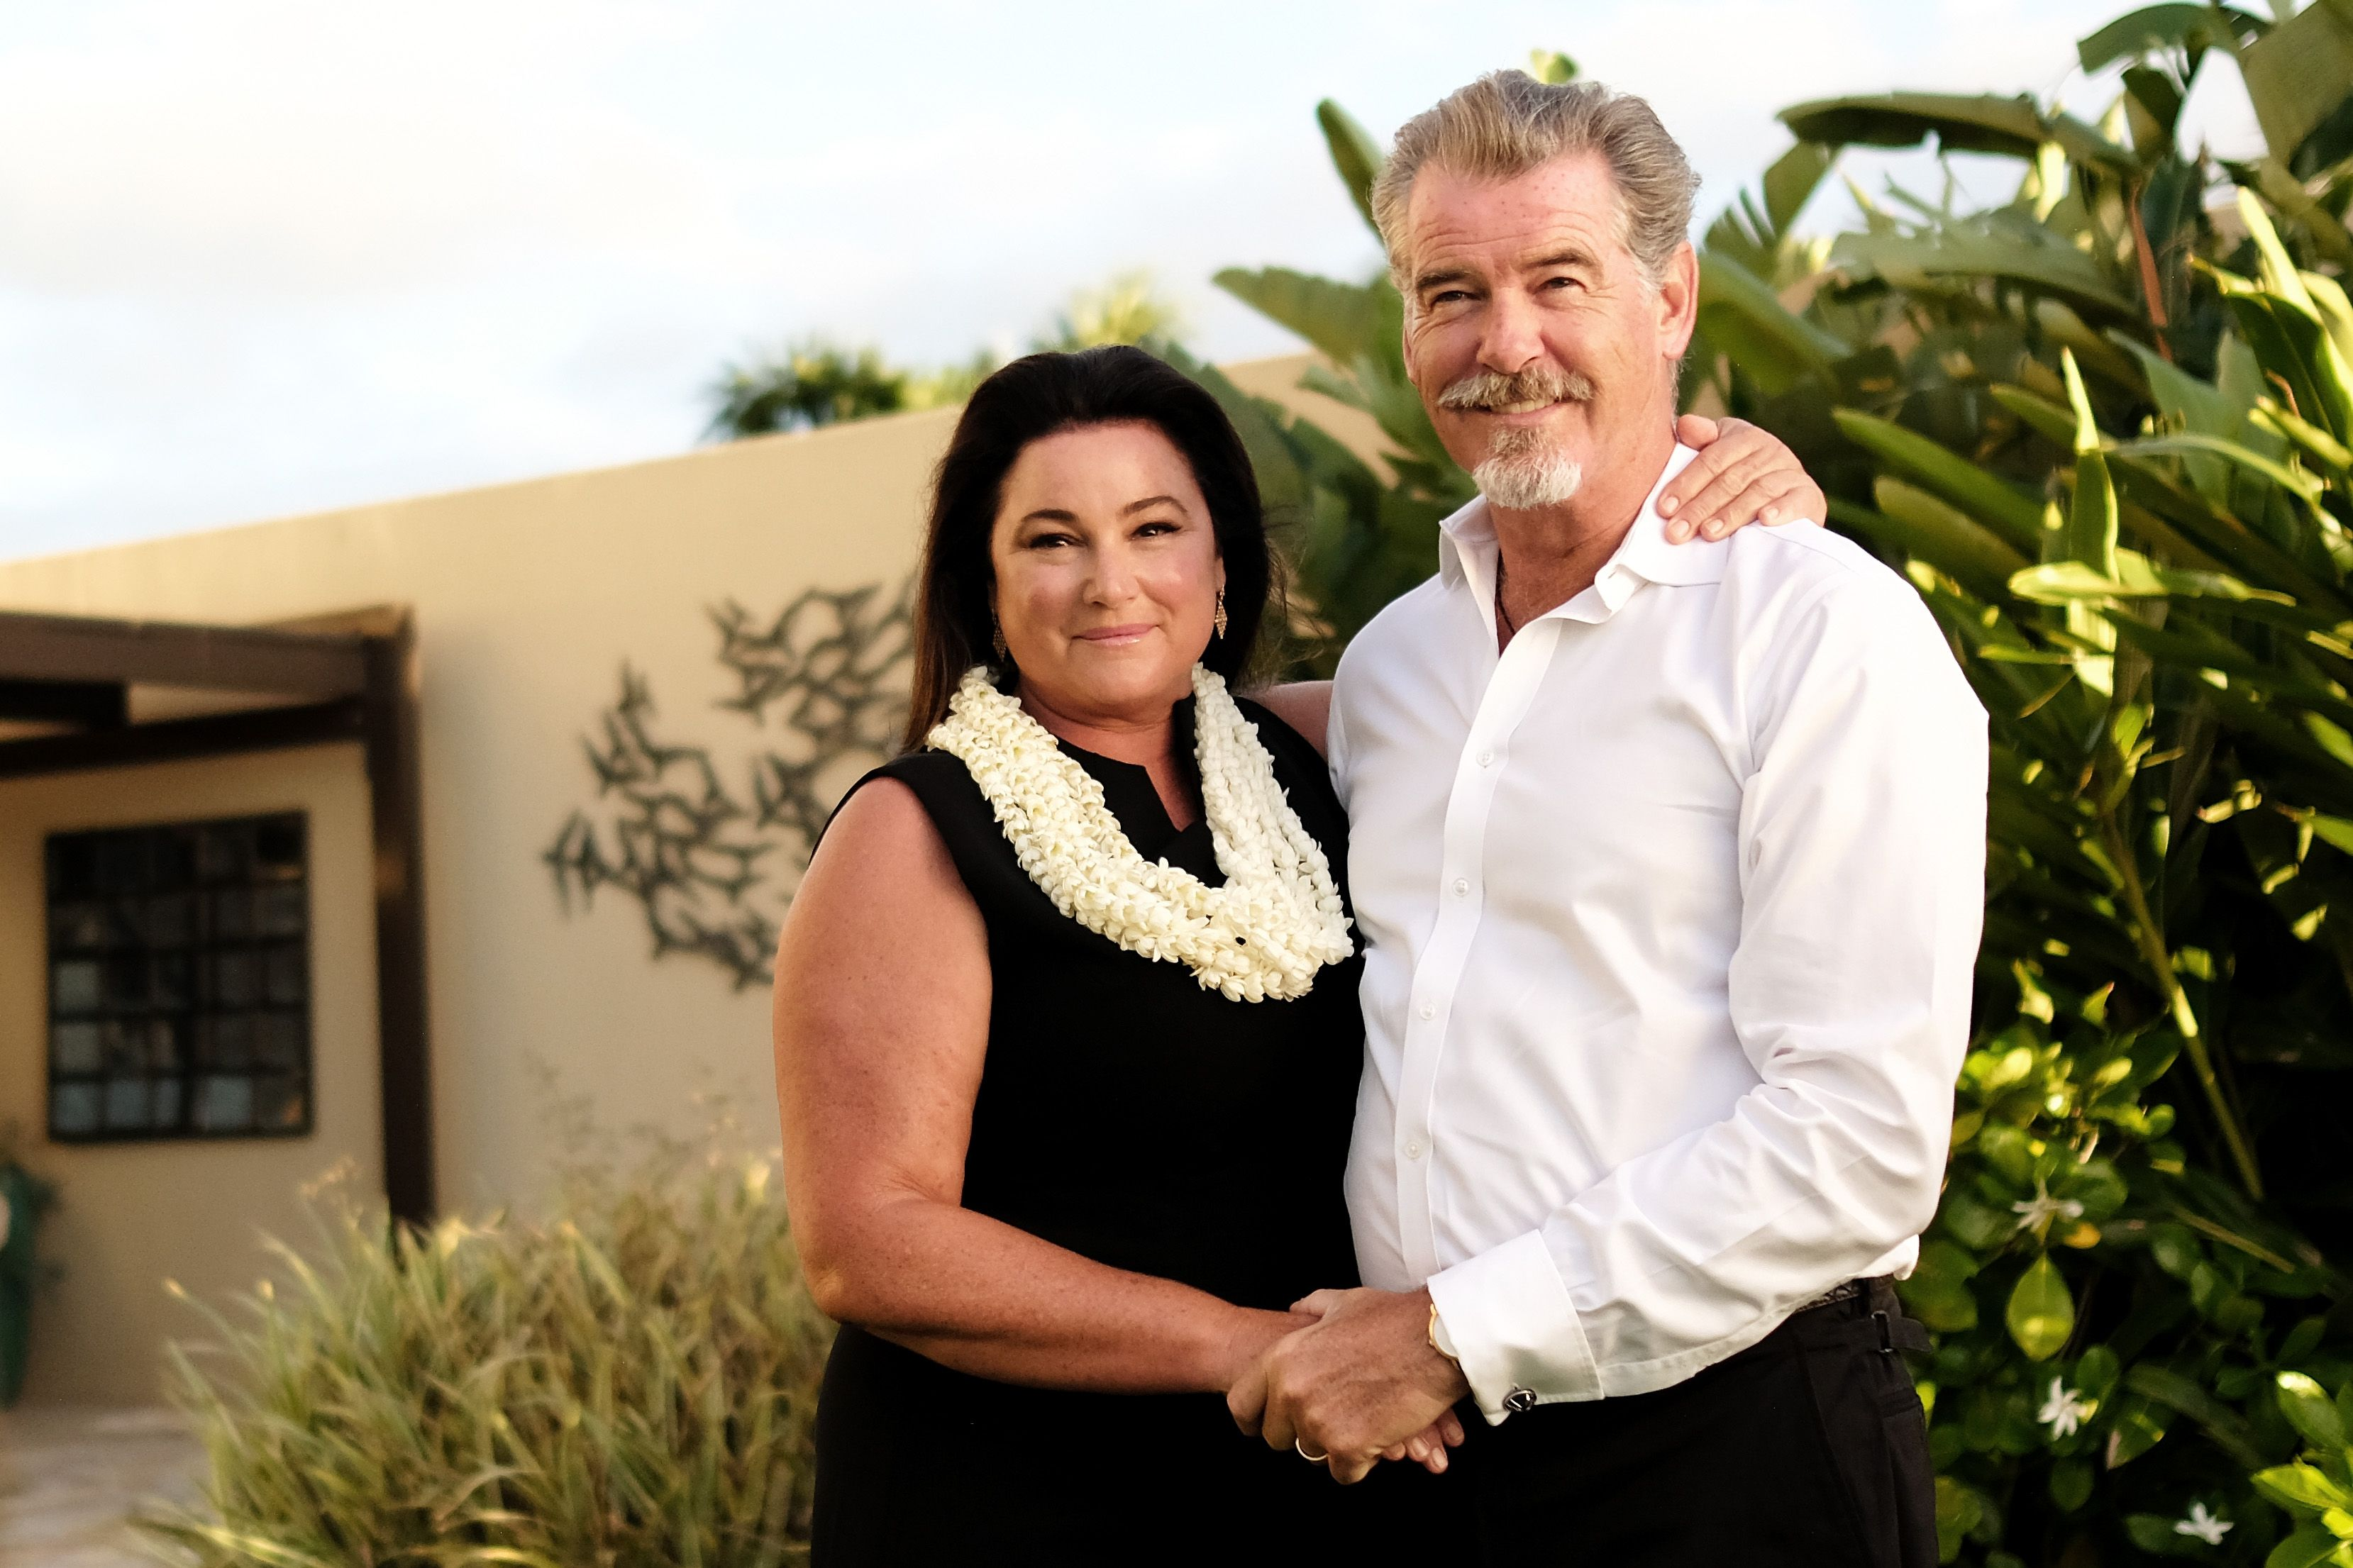 Keely Shaye Smith and Pierce Brosnan recipients of the Pathfinder Award, pose for a portrait during day three of the 2017 Maui Film Festival At Wailea on June 23, 2017 | Photo: Getty Images